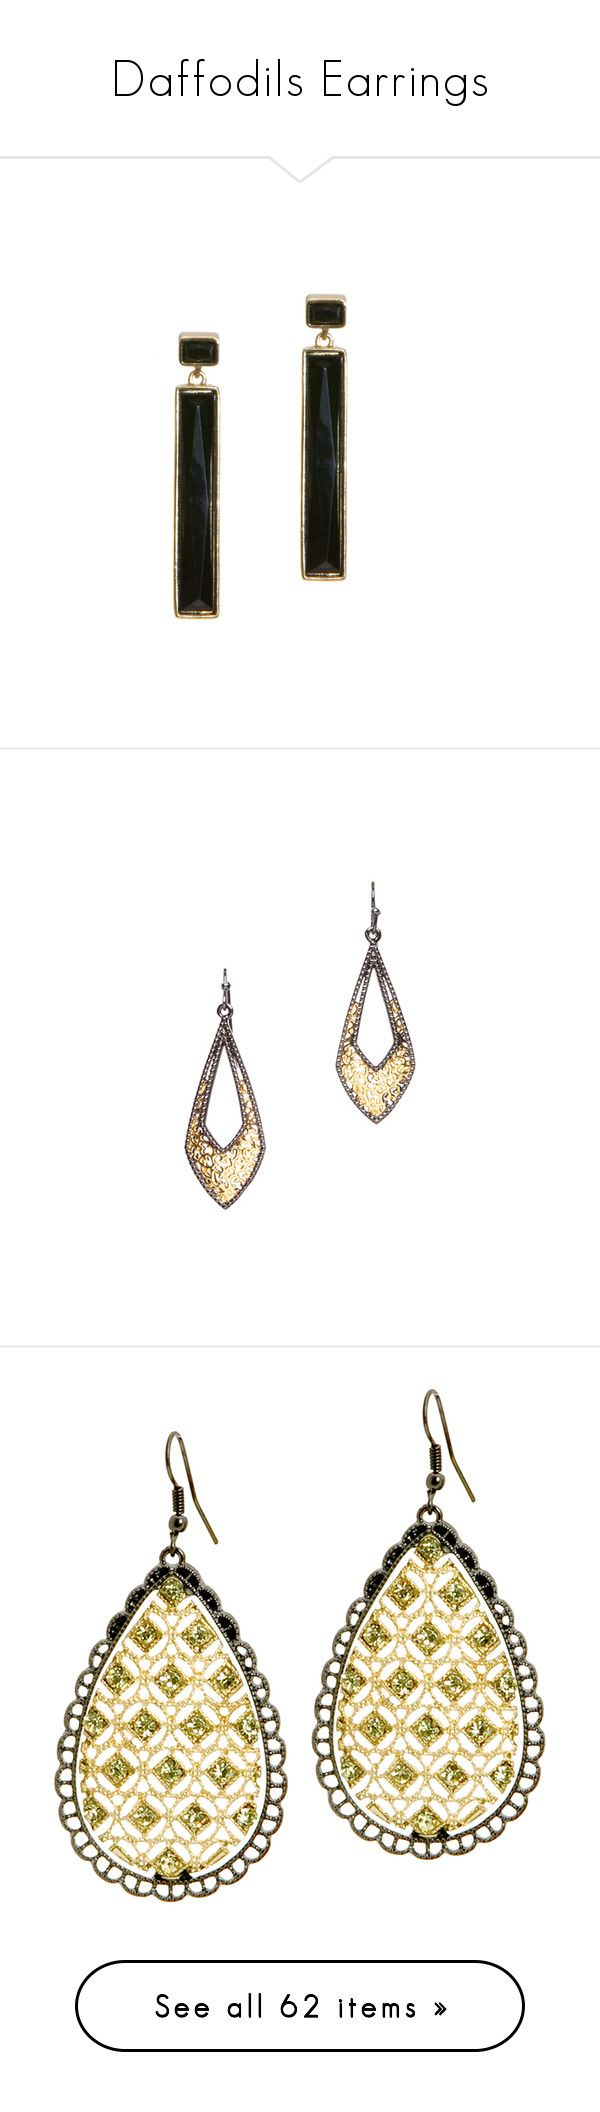 """Daffodils Earrings"" by styleforall ❤ liked on Polyvore featuring jewelry, earrings, geometric drop earrings, geometric jewelry, long earrings, earring jewelry, drop earrings, fish hook jewelry, fish hook earrings and party jewelry"